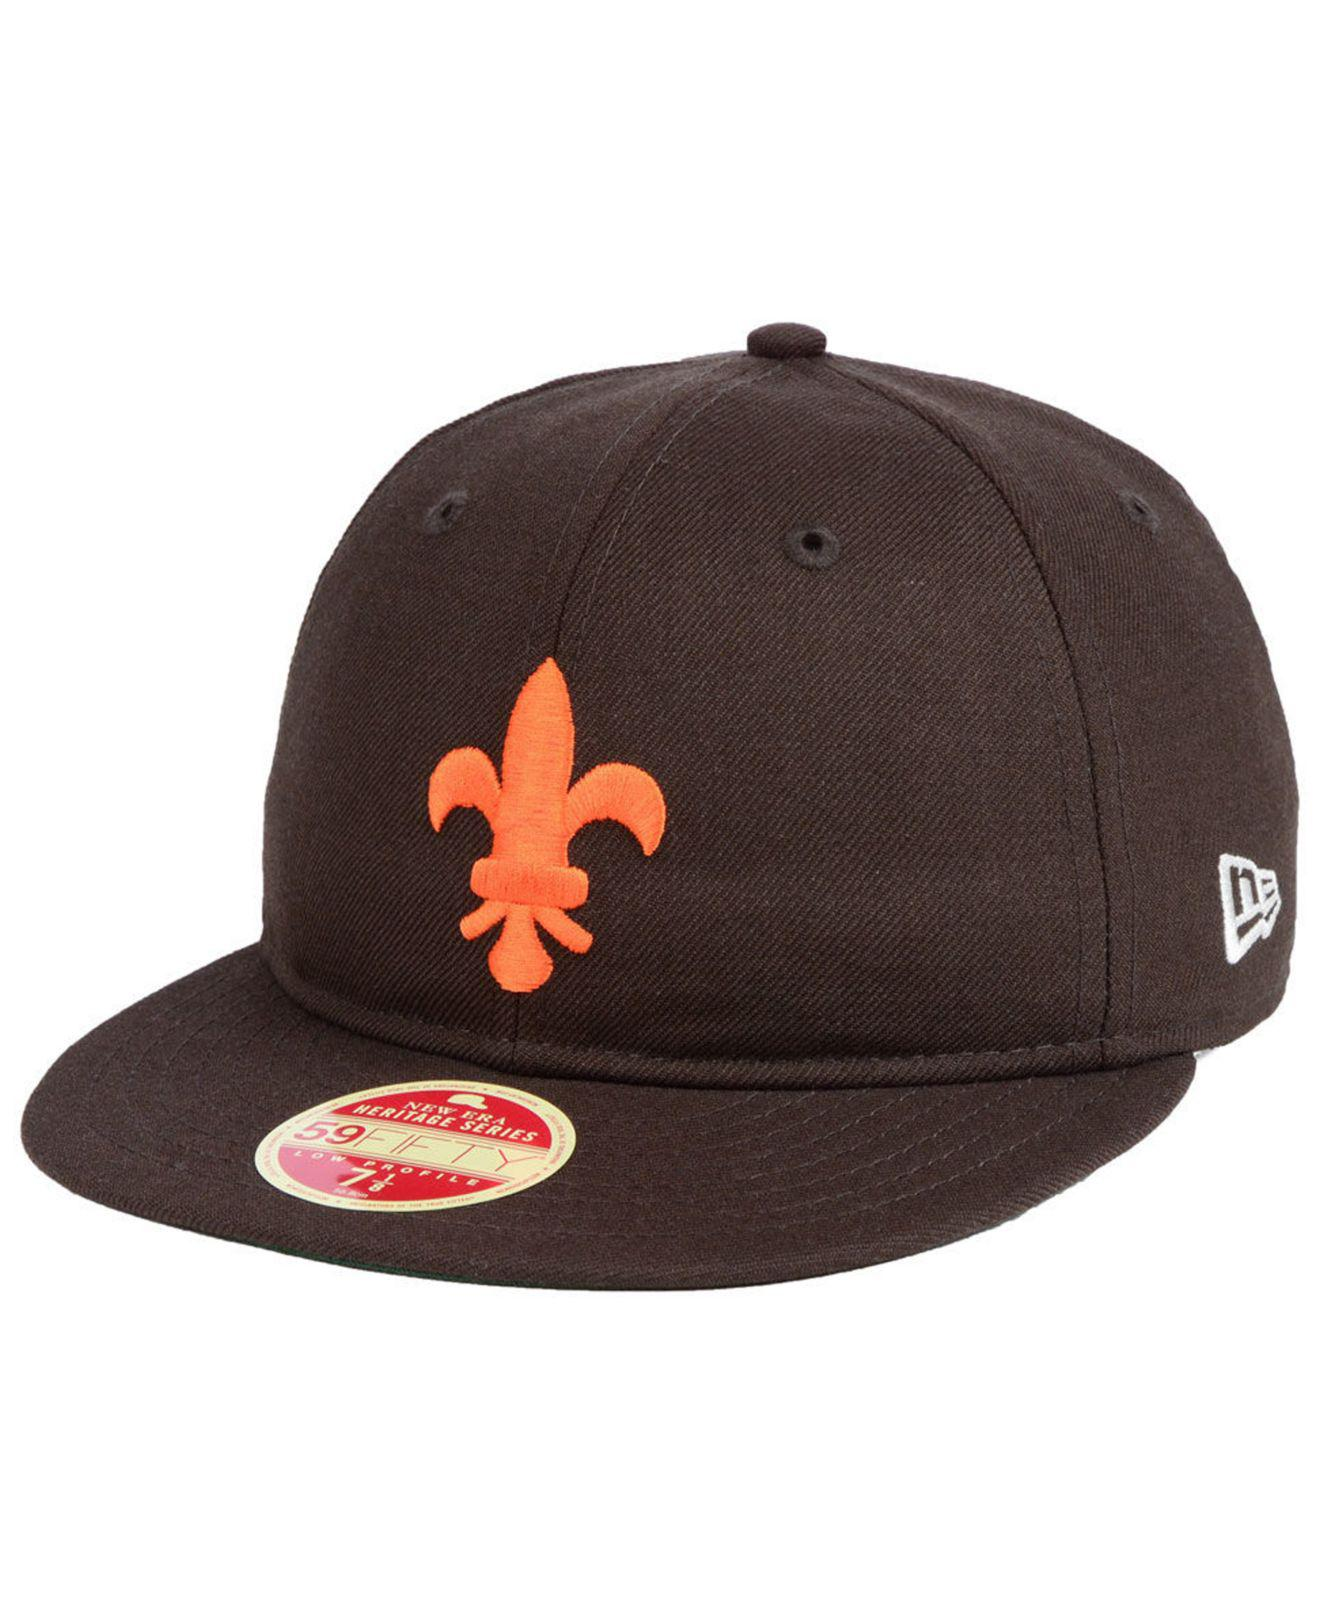 buy popular 183a8 2497d ... official store ktz st. louis browns heritage retro classic 59fifty  fitted cap for men lyst